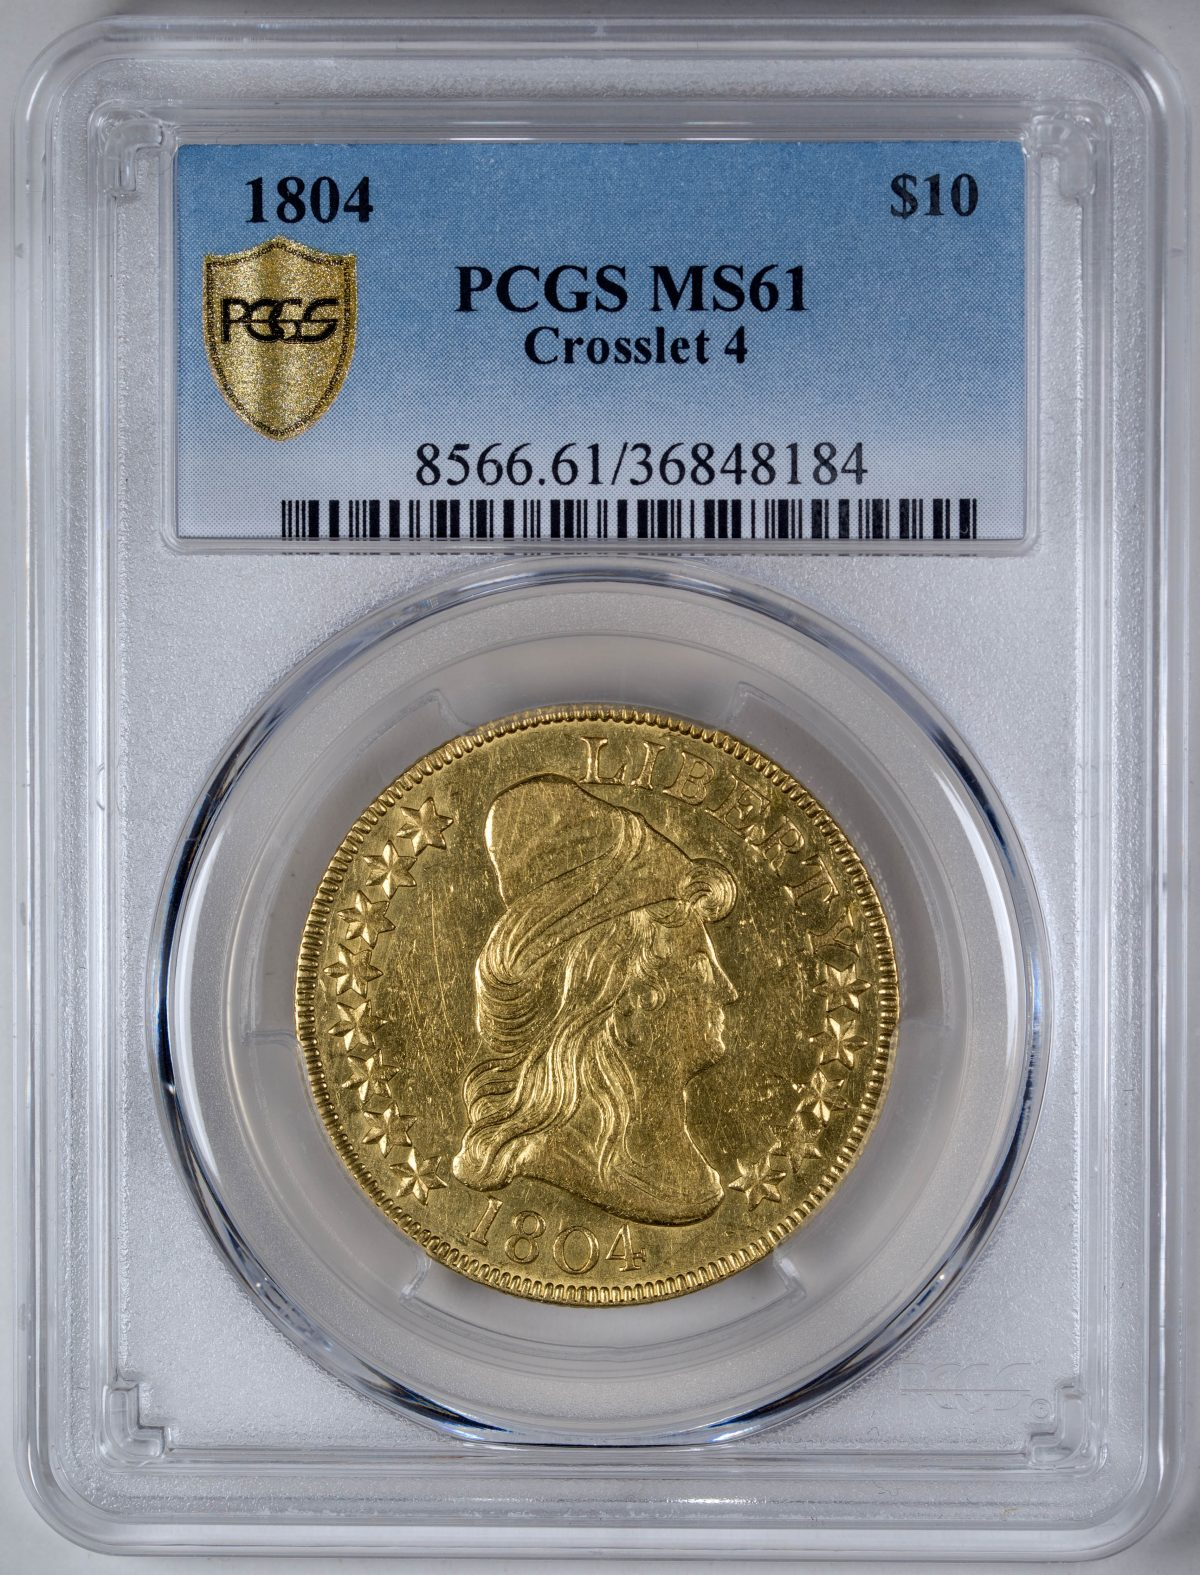 1804 $10 Crosslet 4 – PCGS MS61 Certified US Rare Coin